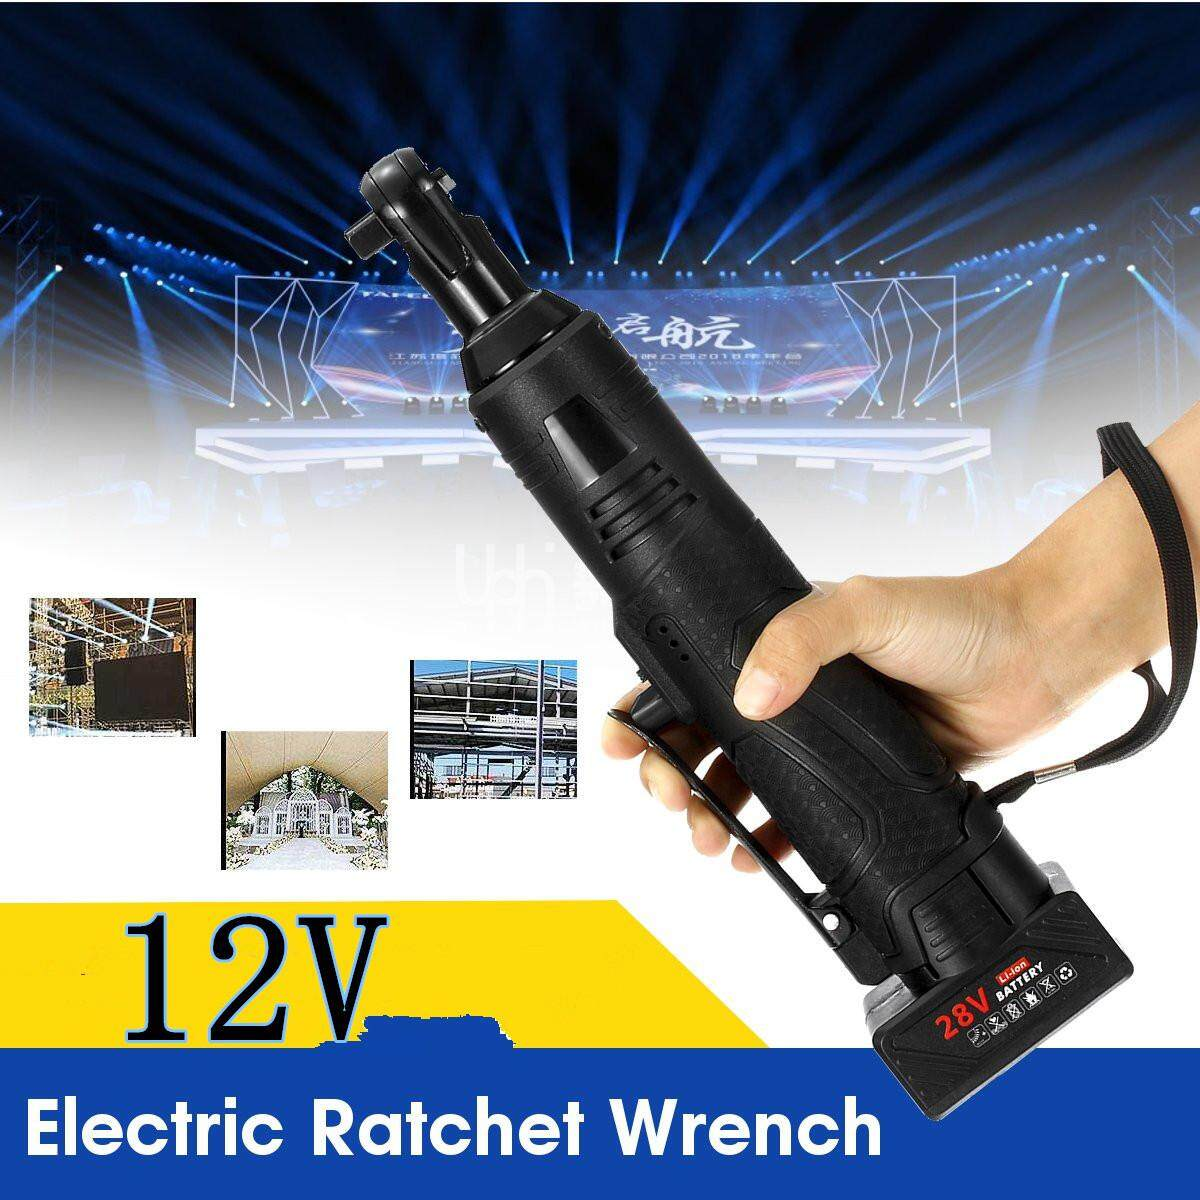 12V/18V/28V Cordless Electric Right Angle Ratchet Wrench One Battery One Charger-12V